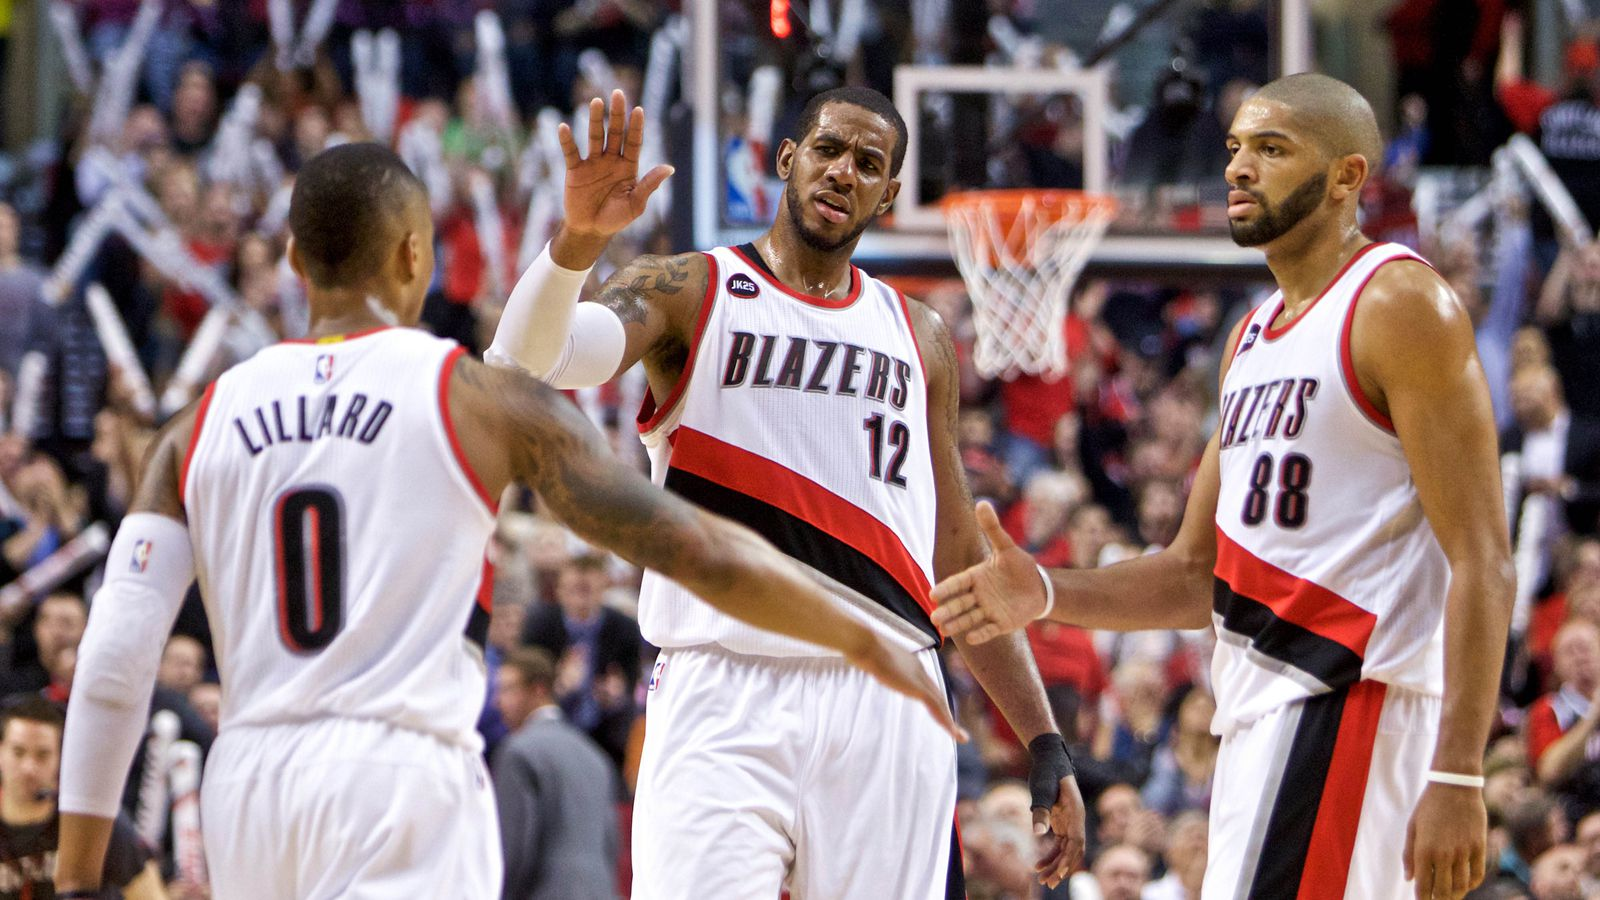 Blazers Vs. Pelicans Final Score 99-90; Portland Rolls Past New Orleans In The Final Quarter ...